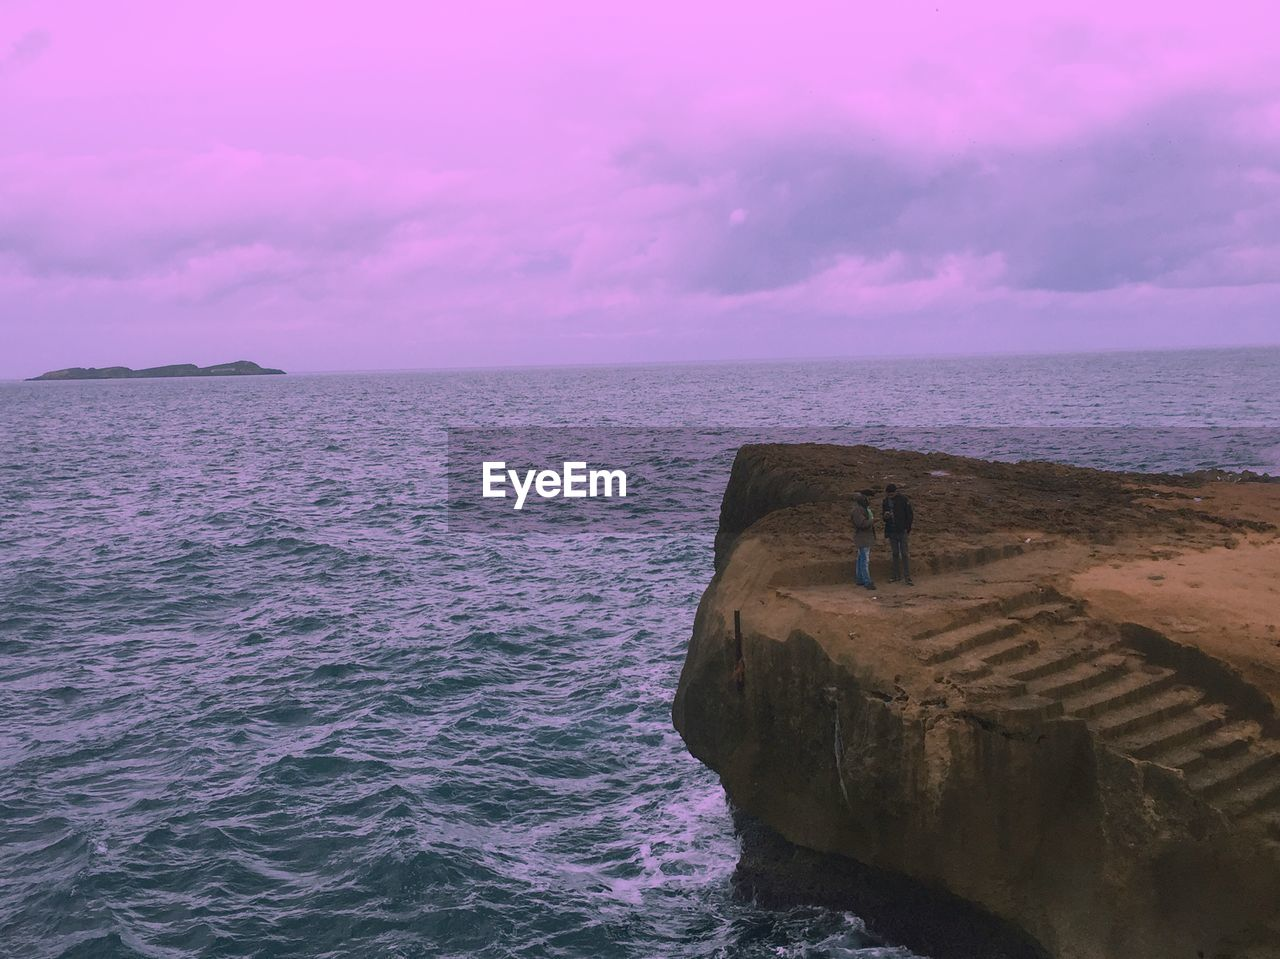 sea, water, sky, scenics - nature, beauty in nature, horizon over water, tranquil scene, horizon, tranquility, cloud - sky, rock, nature, rock - object, no people, sunset, idyllic, solid, beach, waterfront, outdoors, purple